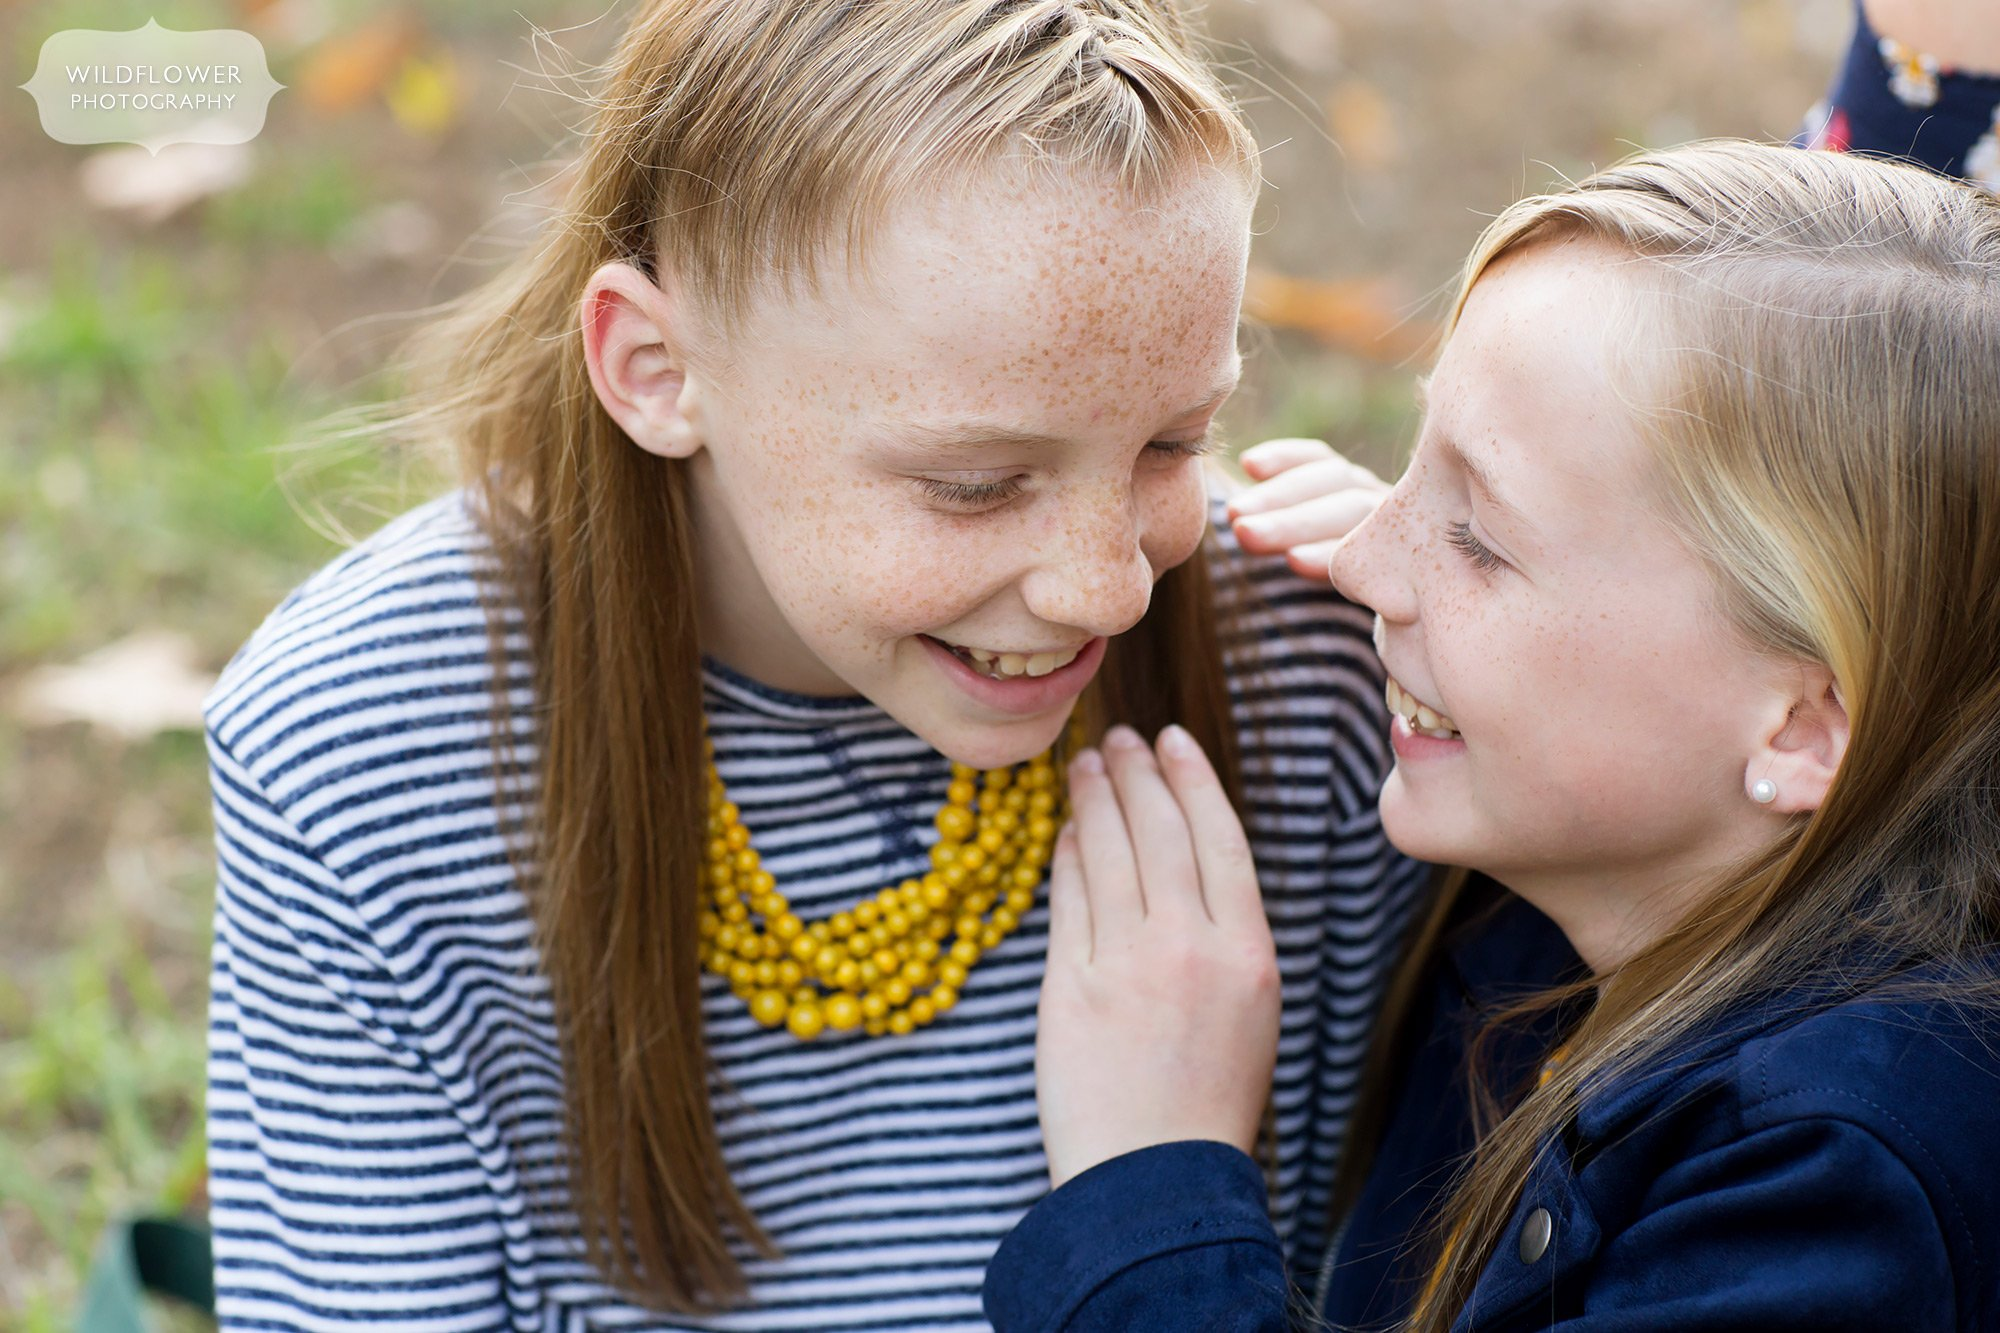 Sisters telling secrets during this sweet family photo session in Como.